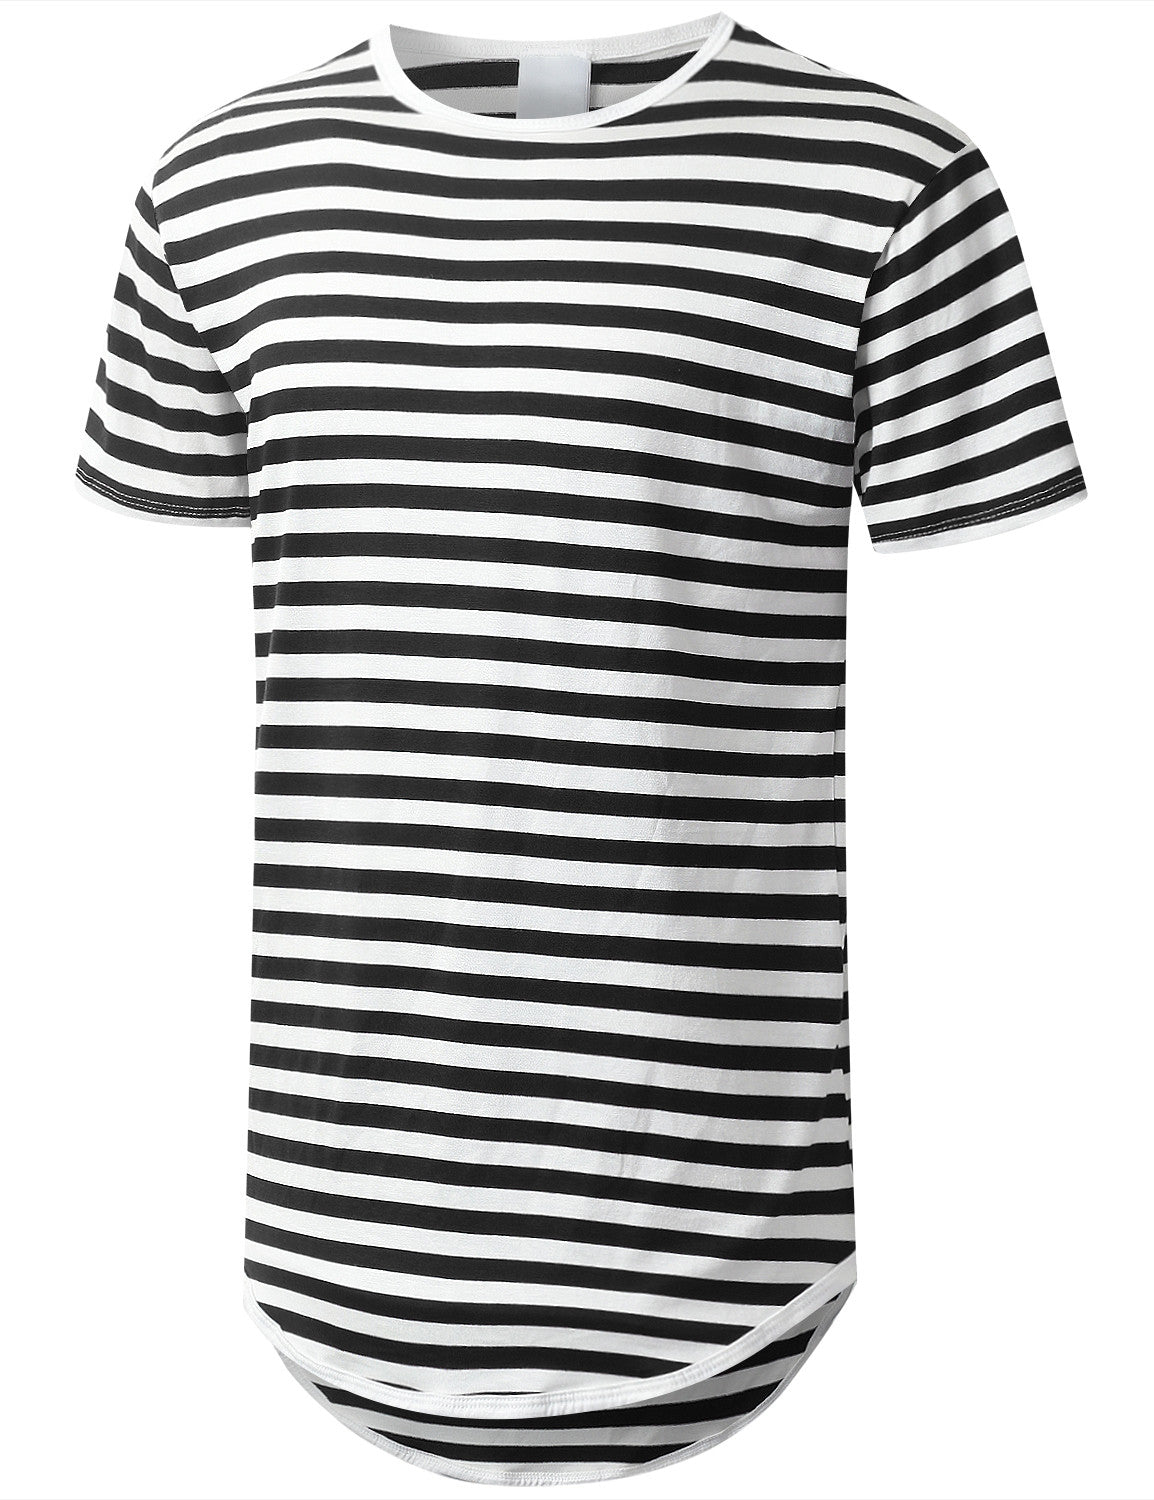 BLACK Striped Longline Crewneck T-shirt - URBANCREWS